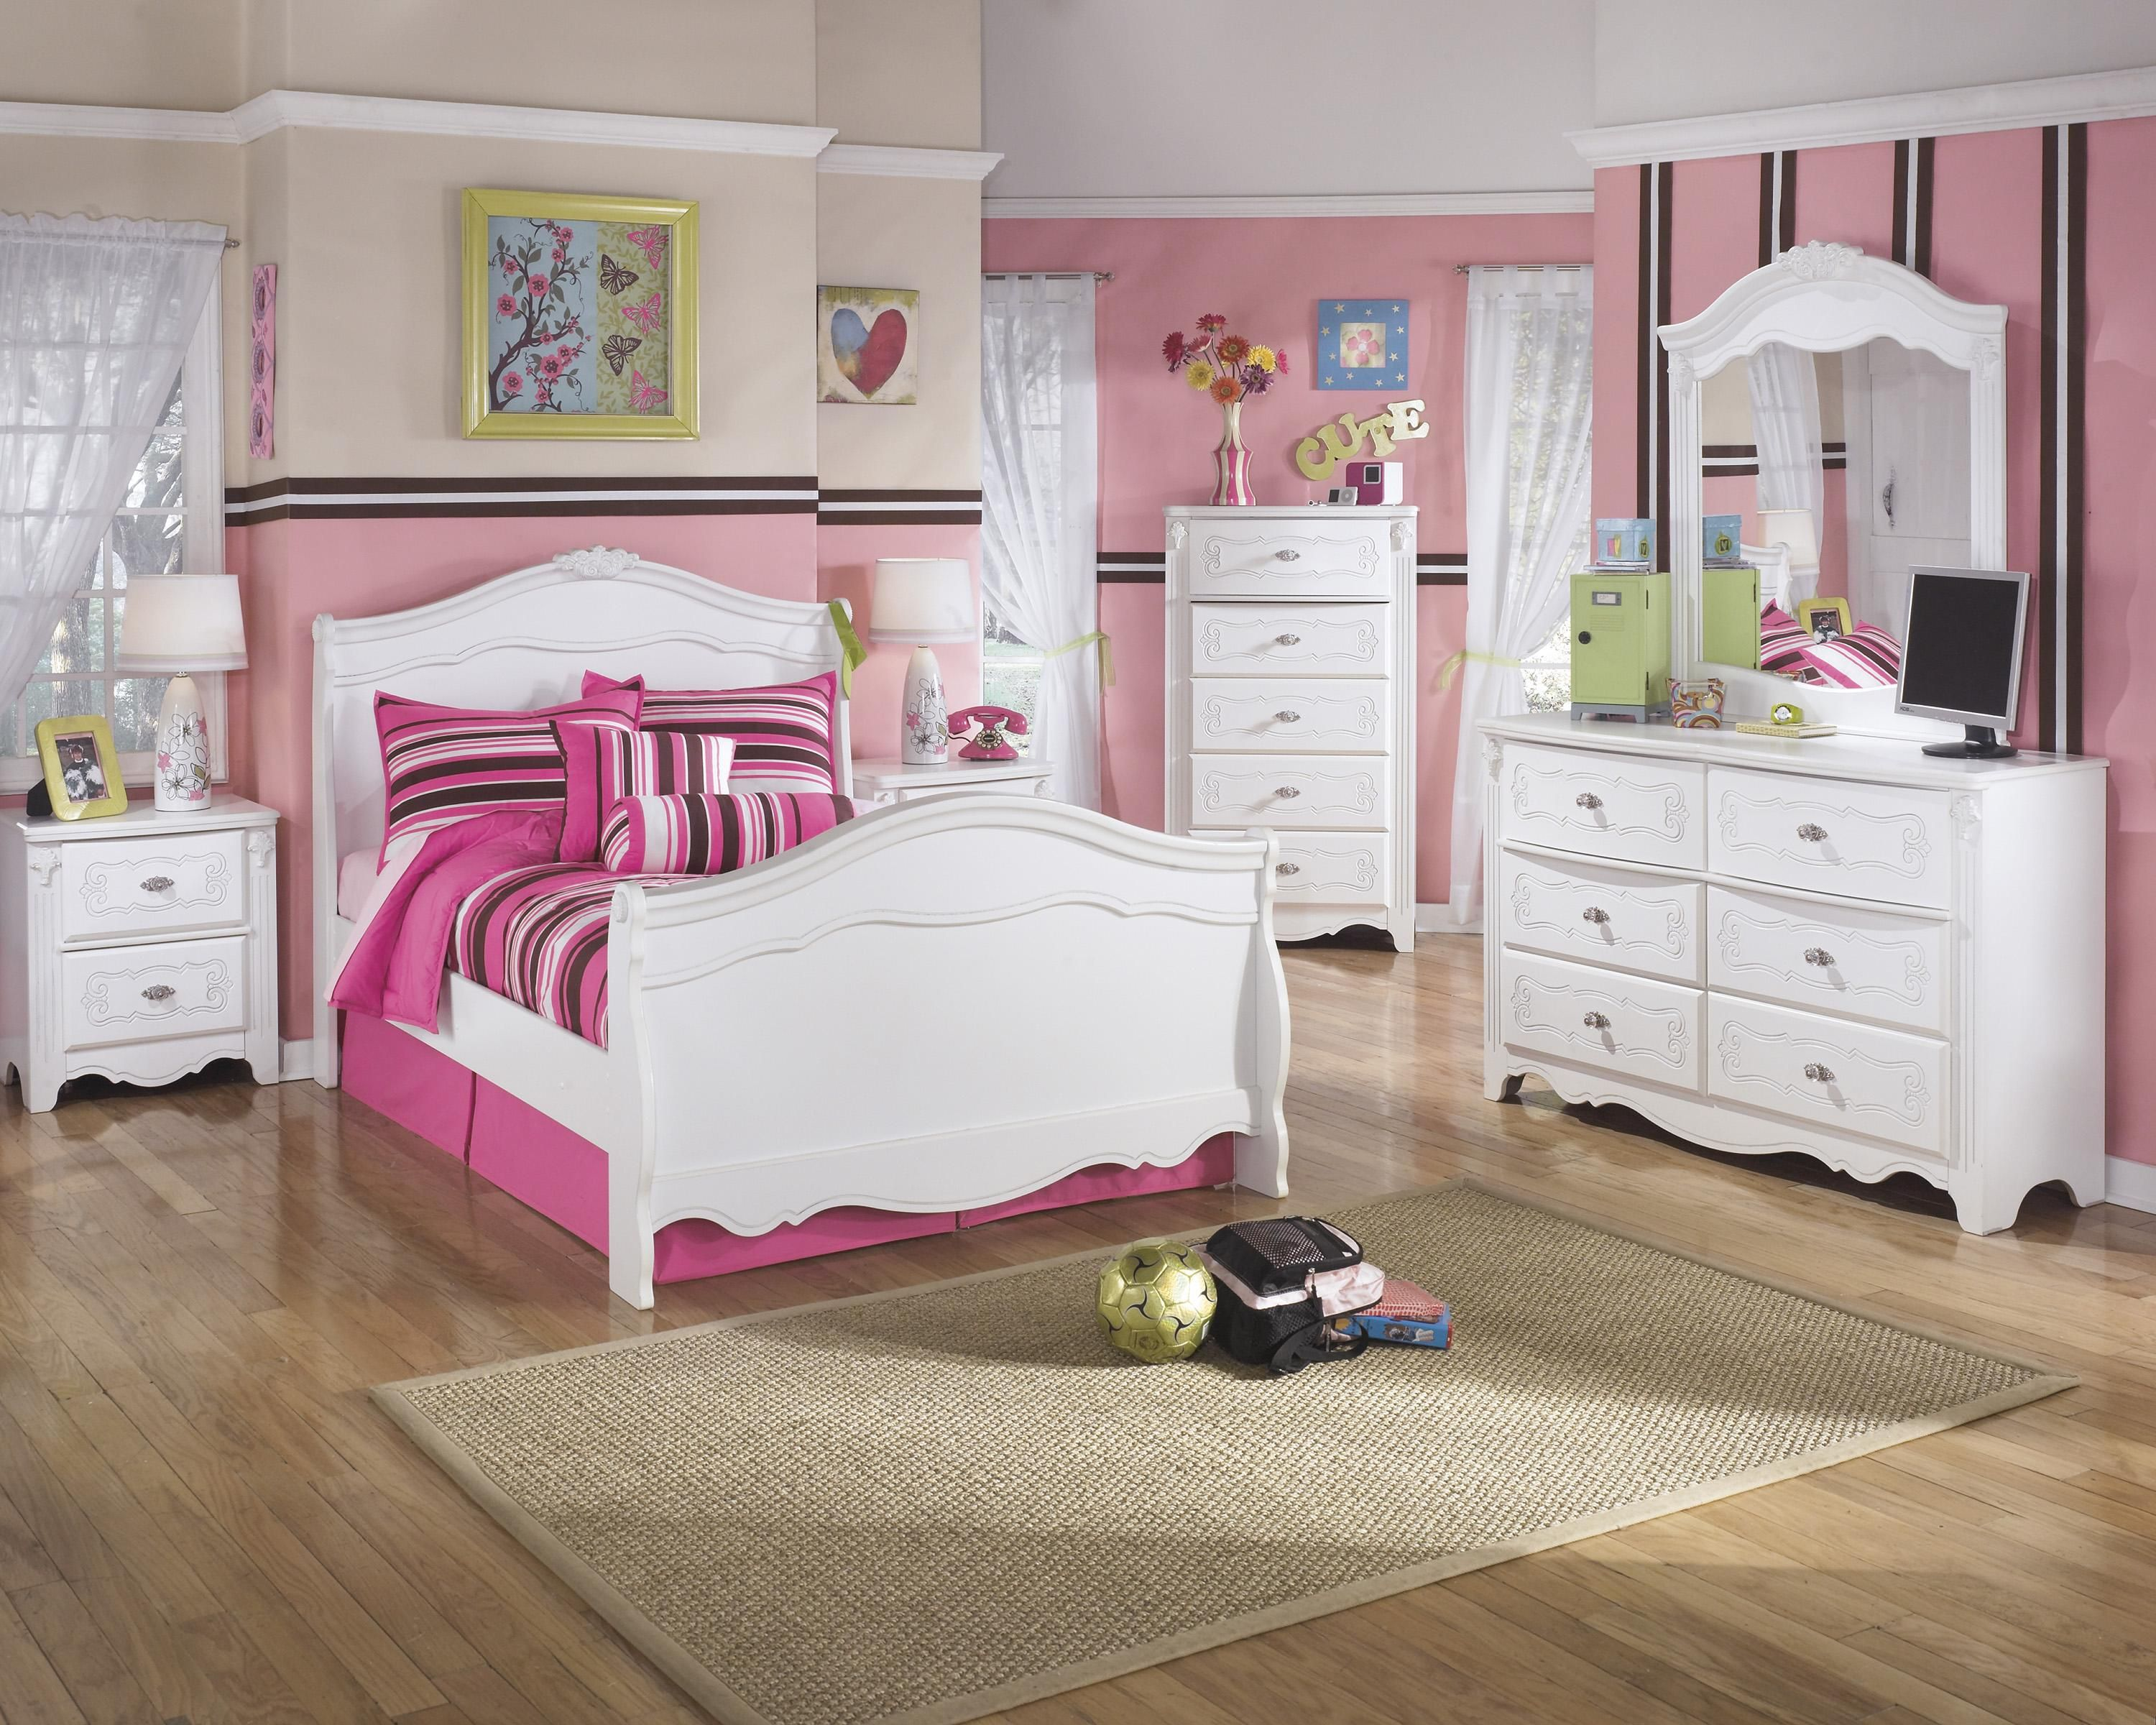 Ashley kids bedroom furniture - Exquisite Full Bedroom Group By Signature Design By Ashley